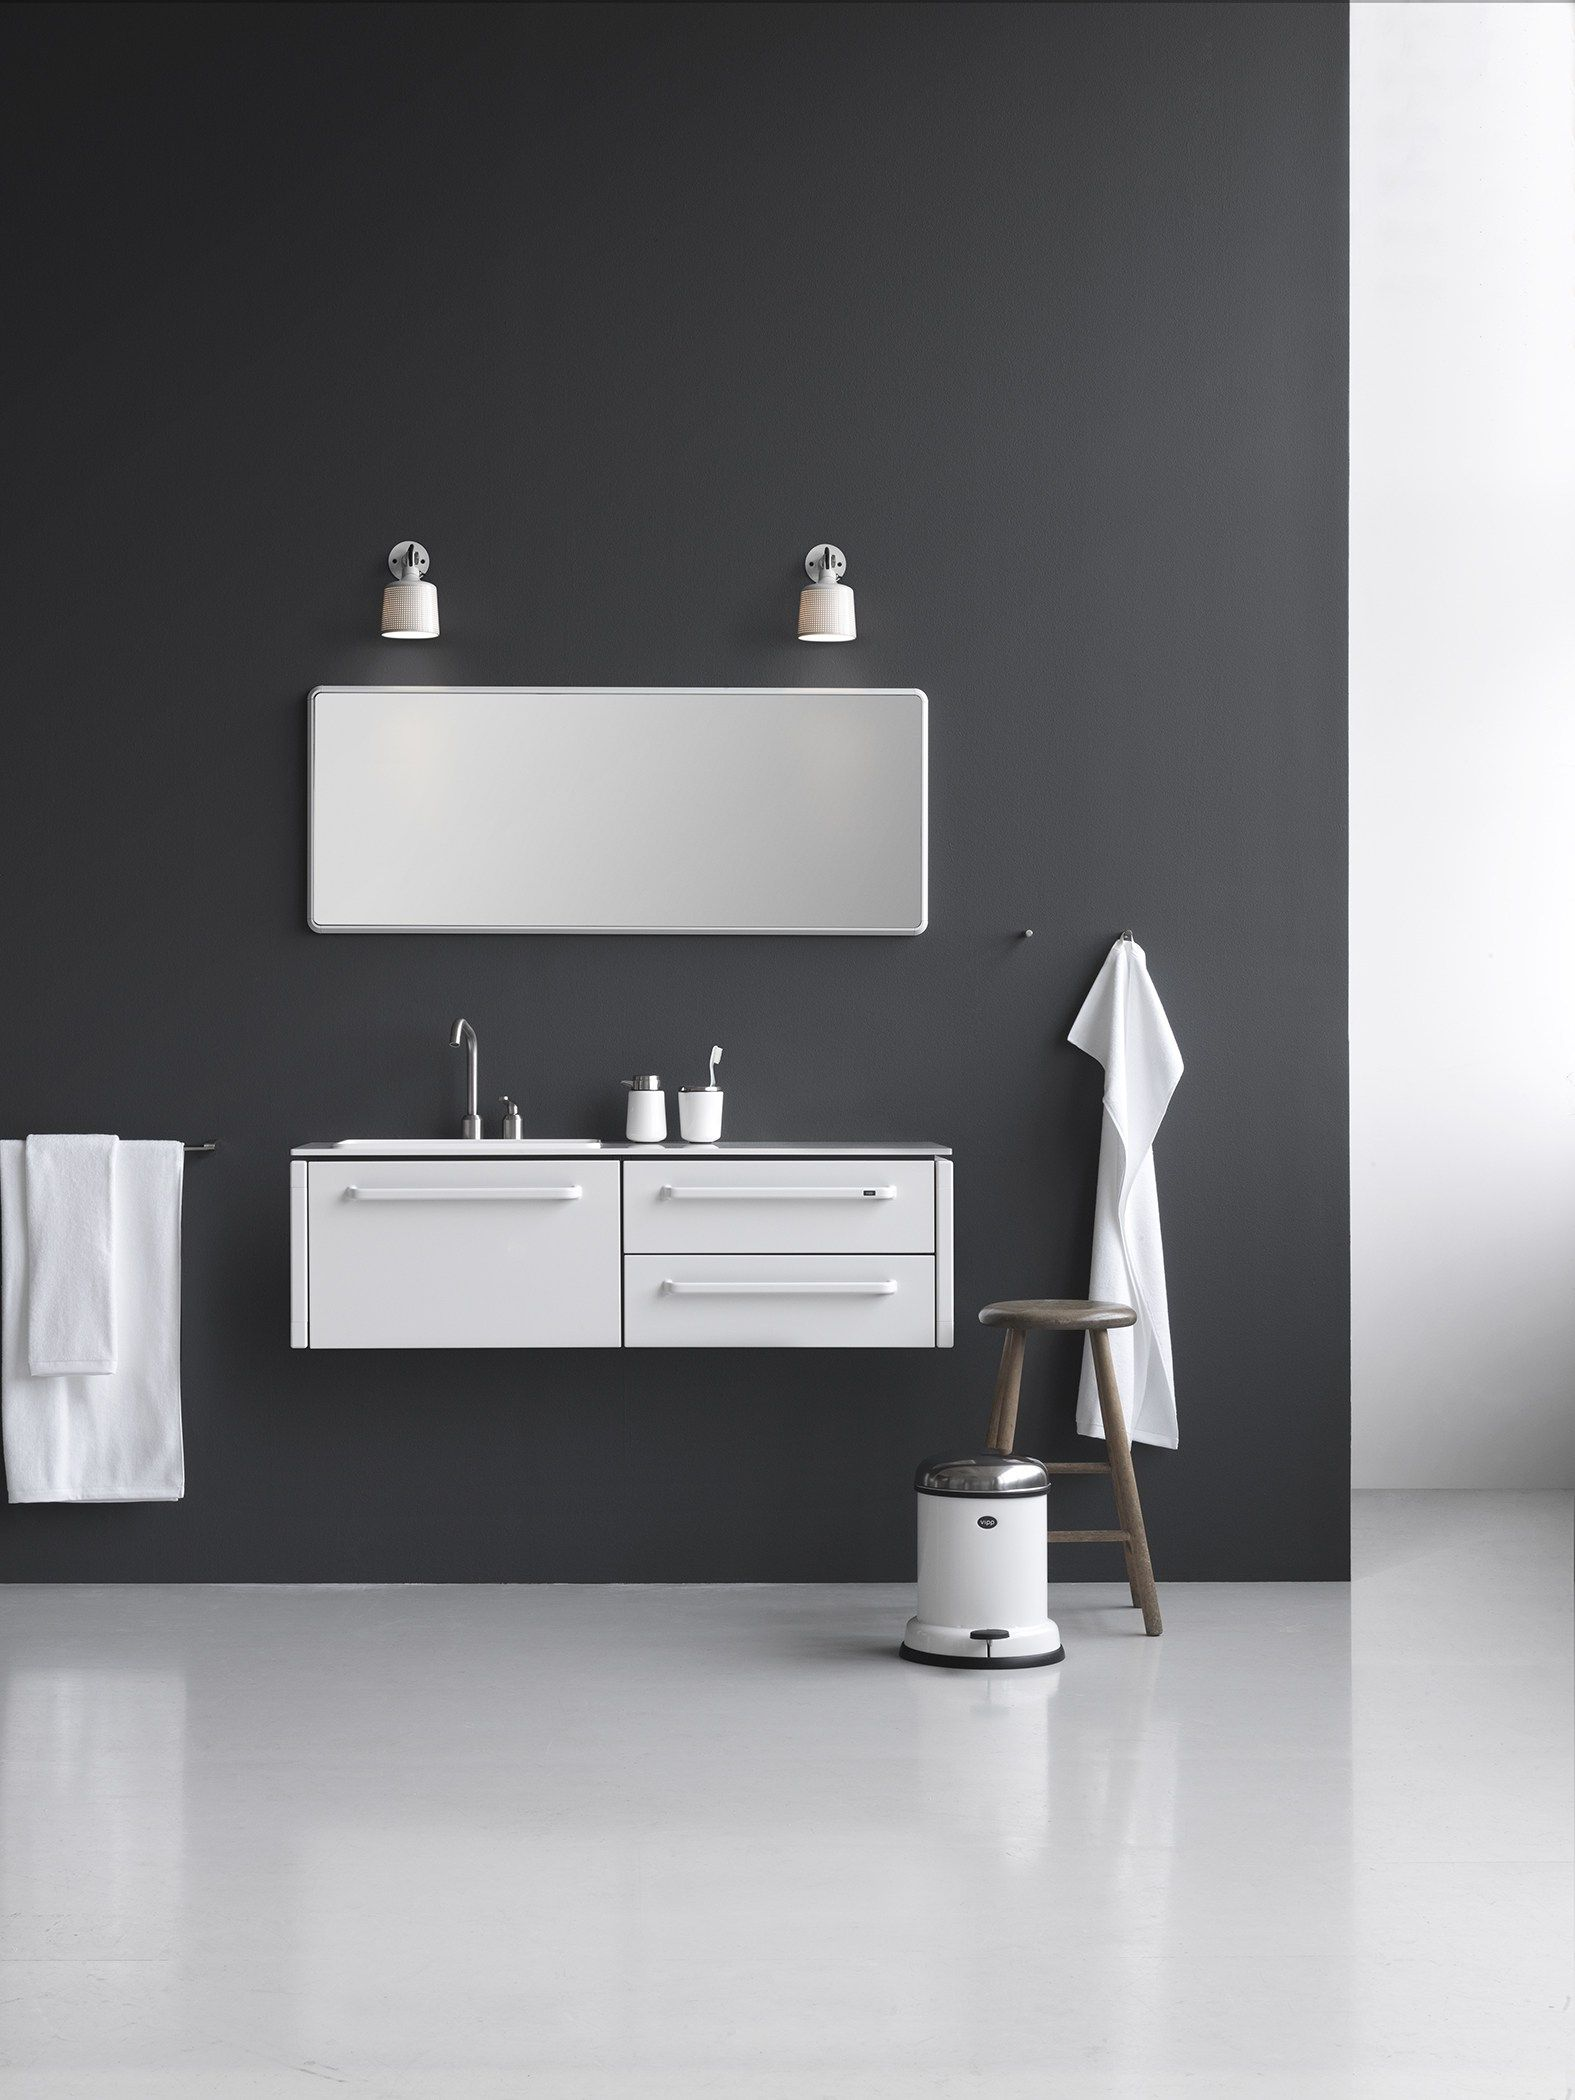 6 Simple Bathroom Collections For The Design Conscious Simple Bathroom Bathroom Collections Bathroom Inspiration